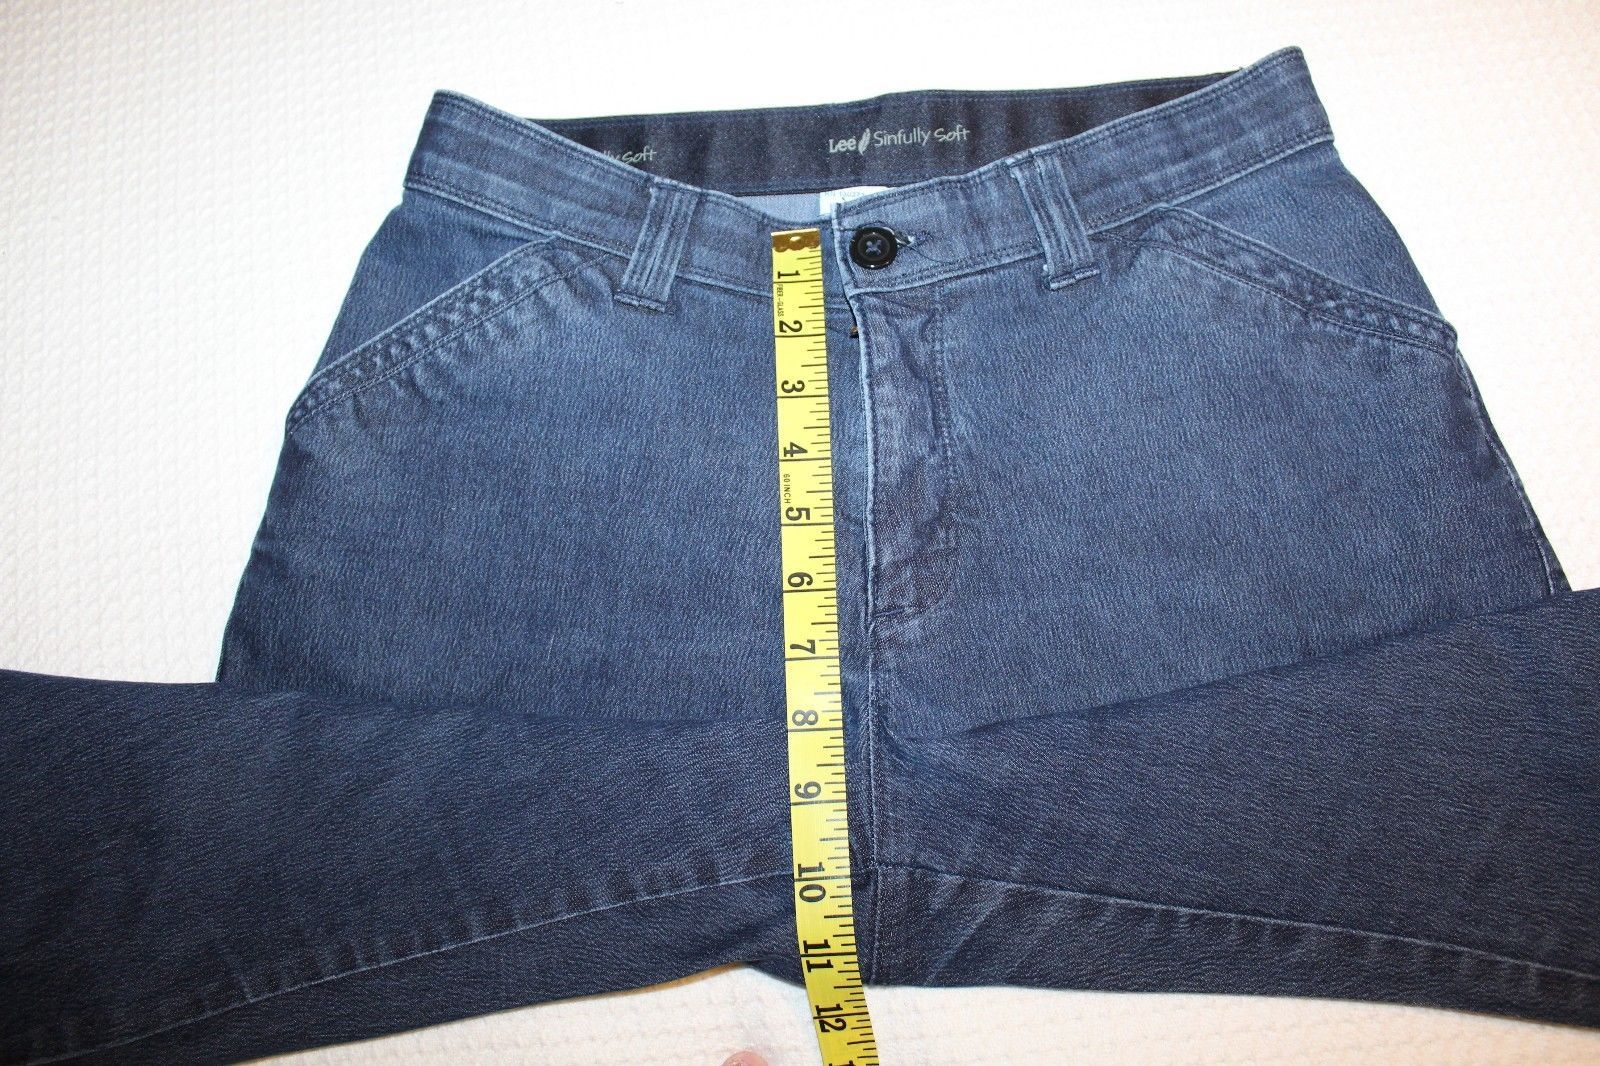 6b91d0d6 LEE Sinfully Soft Women's Size 10 Short Boot Cut Stretch Jeans 29